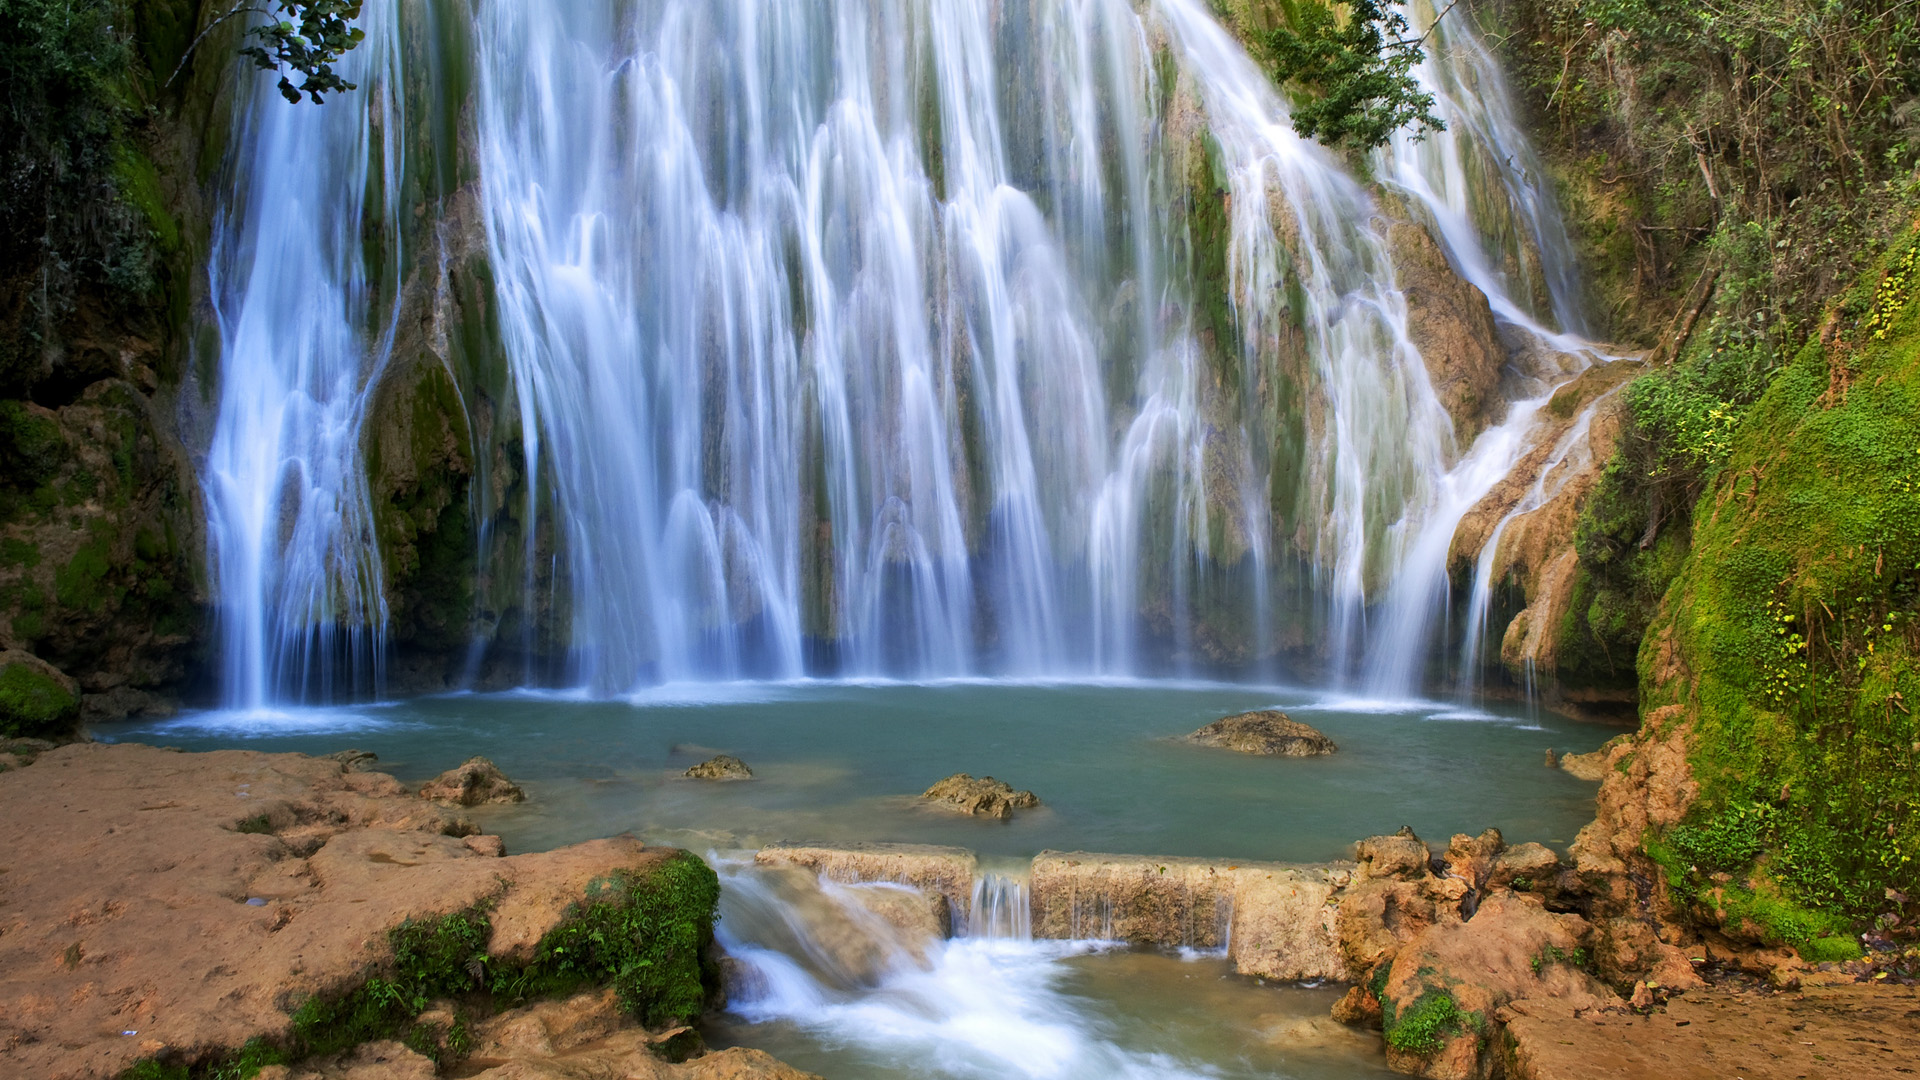 nature waterfall landscapes rivers pool spray drops timelapse lapse stop trees forest jungle